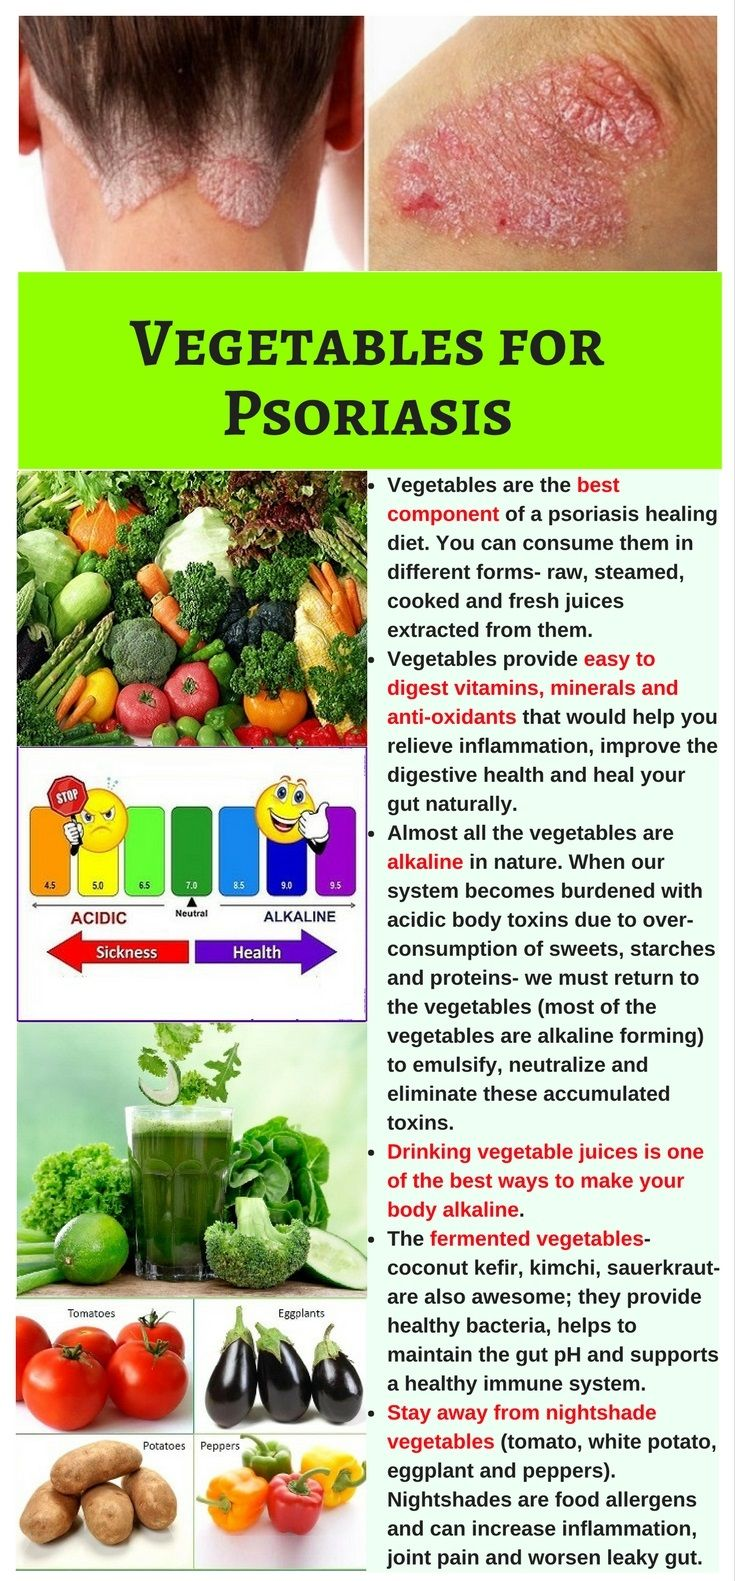 Vegetables Are The Best Ingredients Of A Psoriasis Healing Diet They Are Easy To Digest Make Your Body Alkaline Psoriasis Healing Healing Diet Psoriasis Diet